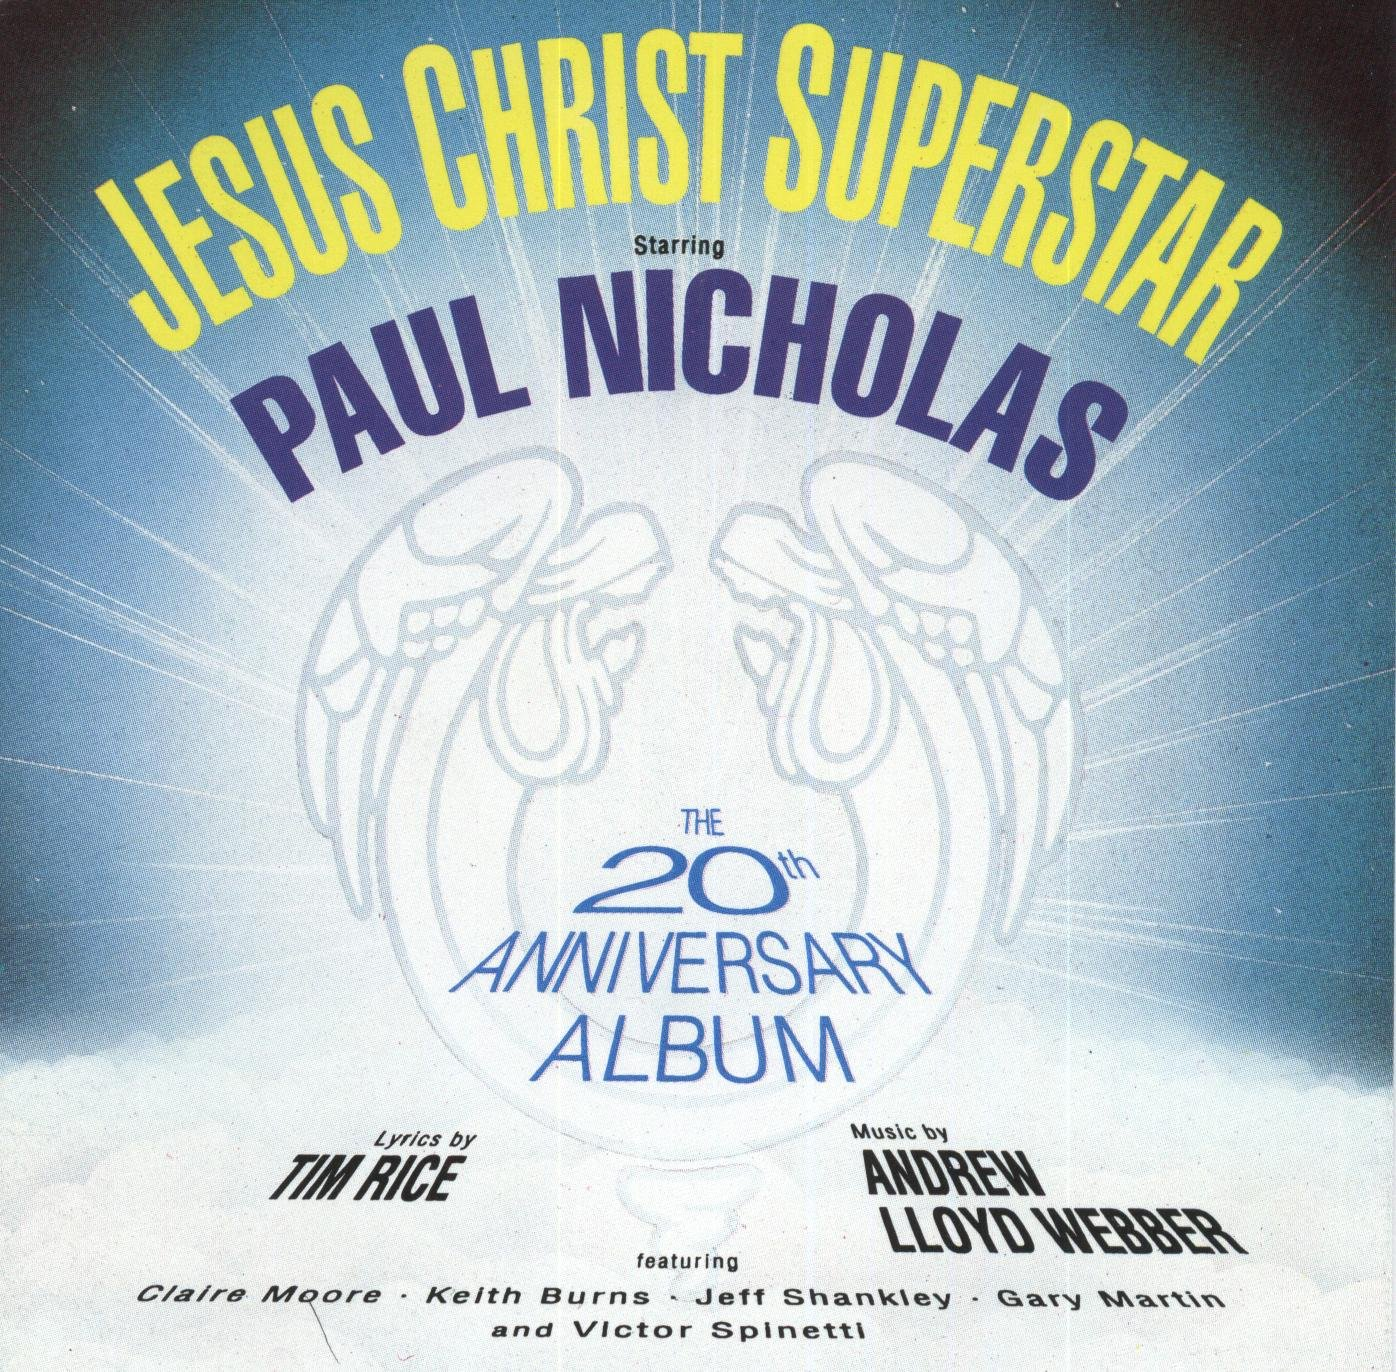 Paul Nicholas, Claire Moore, Keith Burns, Jeff Shankley, Gary Martin, Victor Spinetti Jesus Christ Superstar - The 20th Anniversary Album